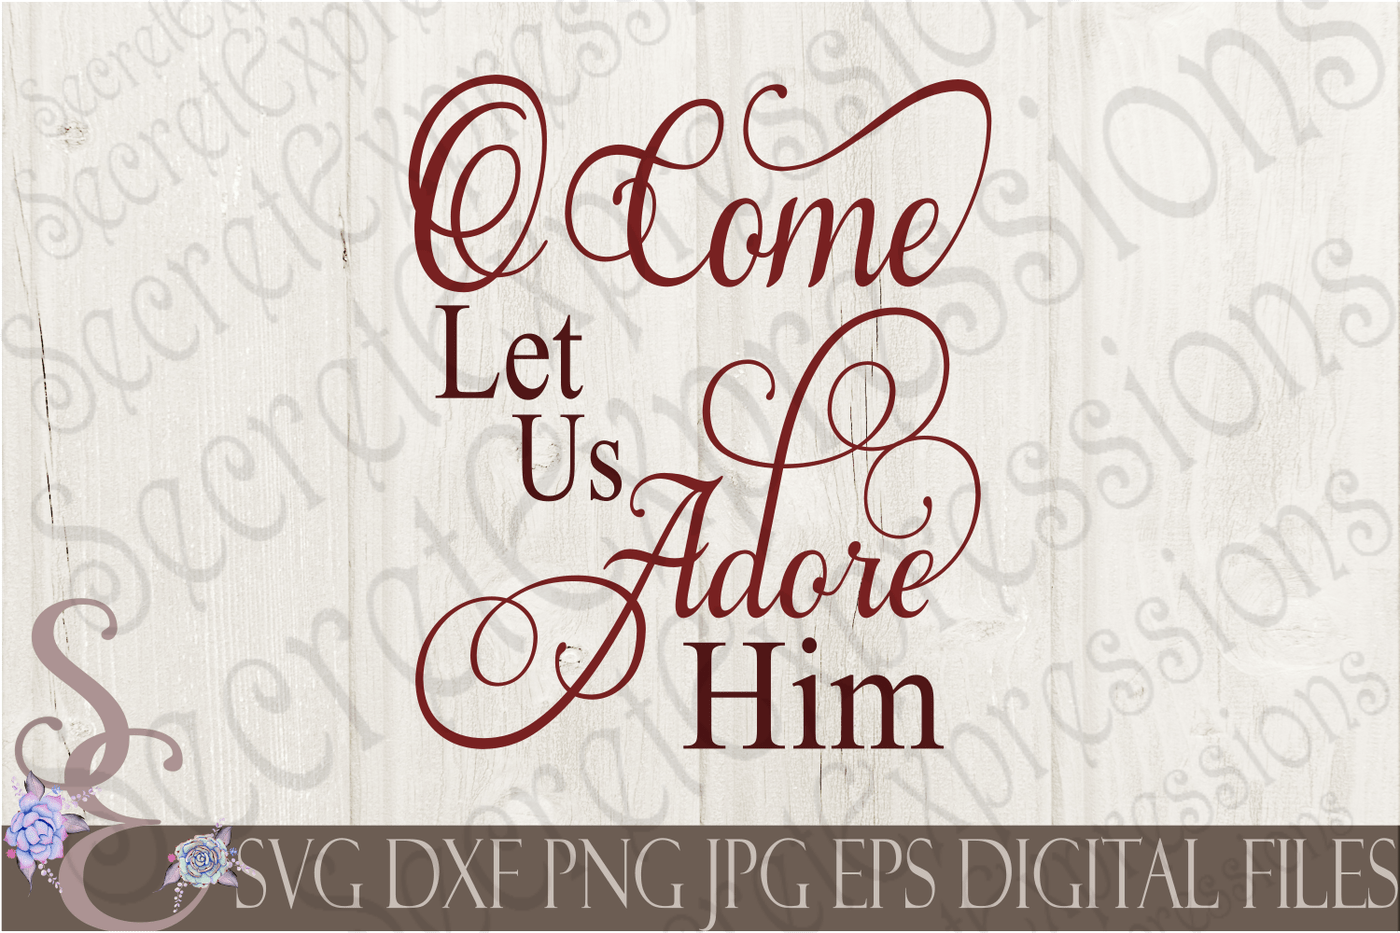 These files ready to be. Religious Christmas Svg Bundle 8 Designs By Secretexpressionssvg Thehungryjpeg Com